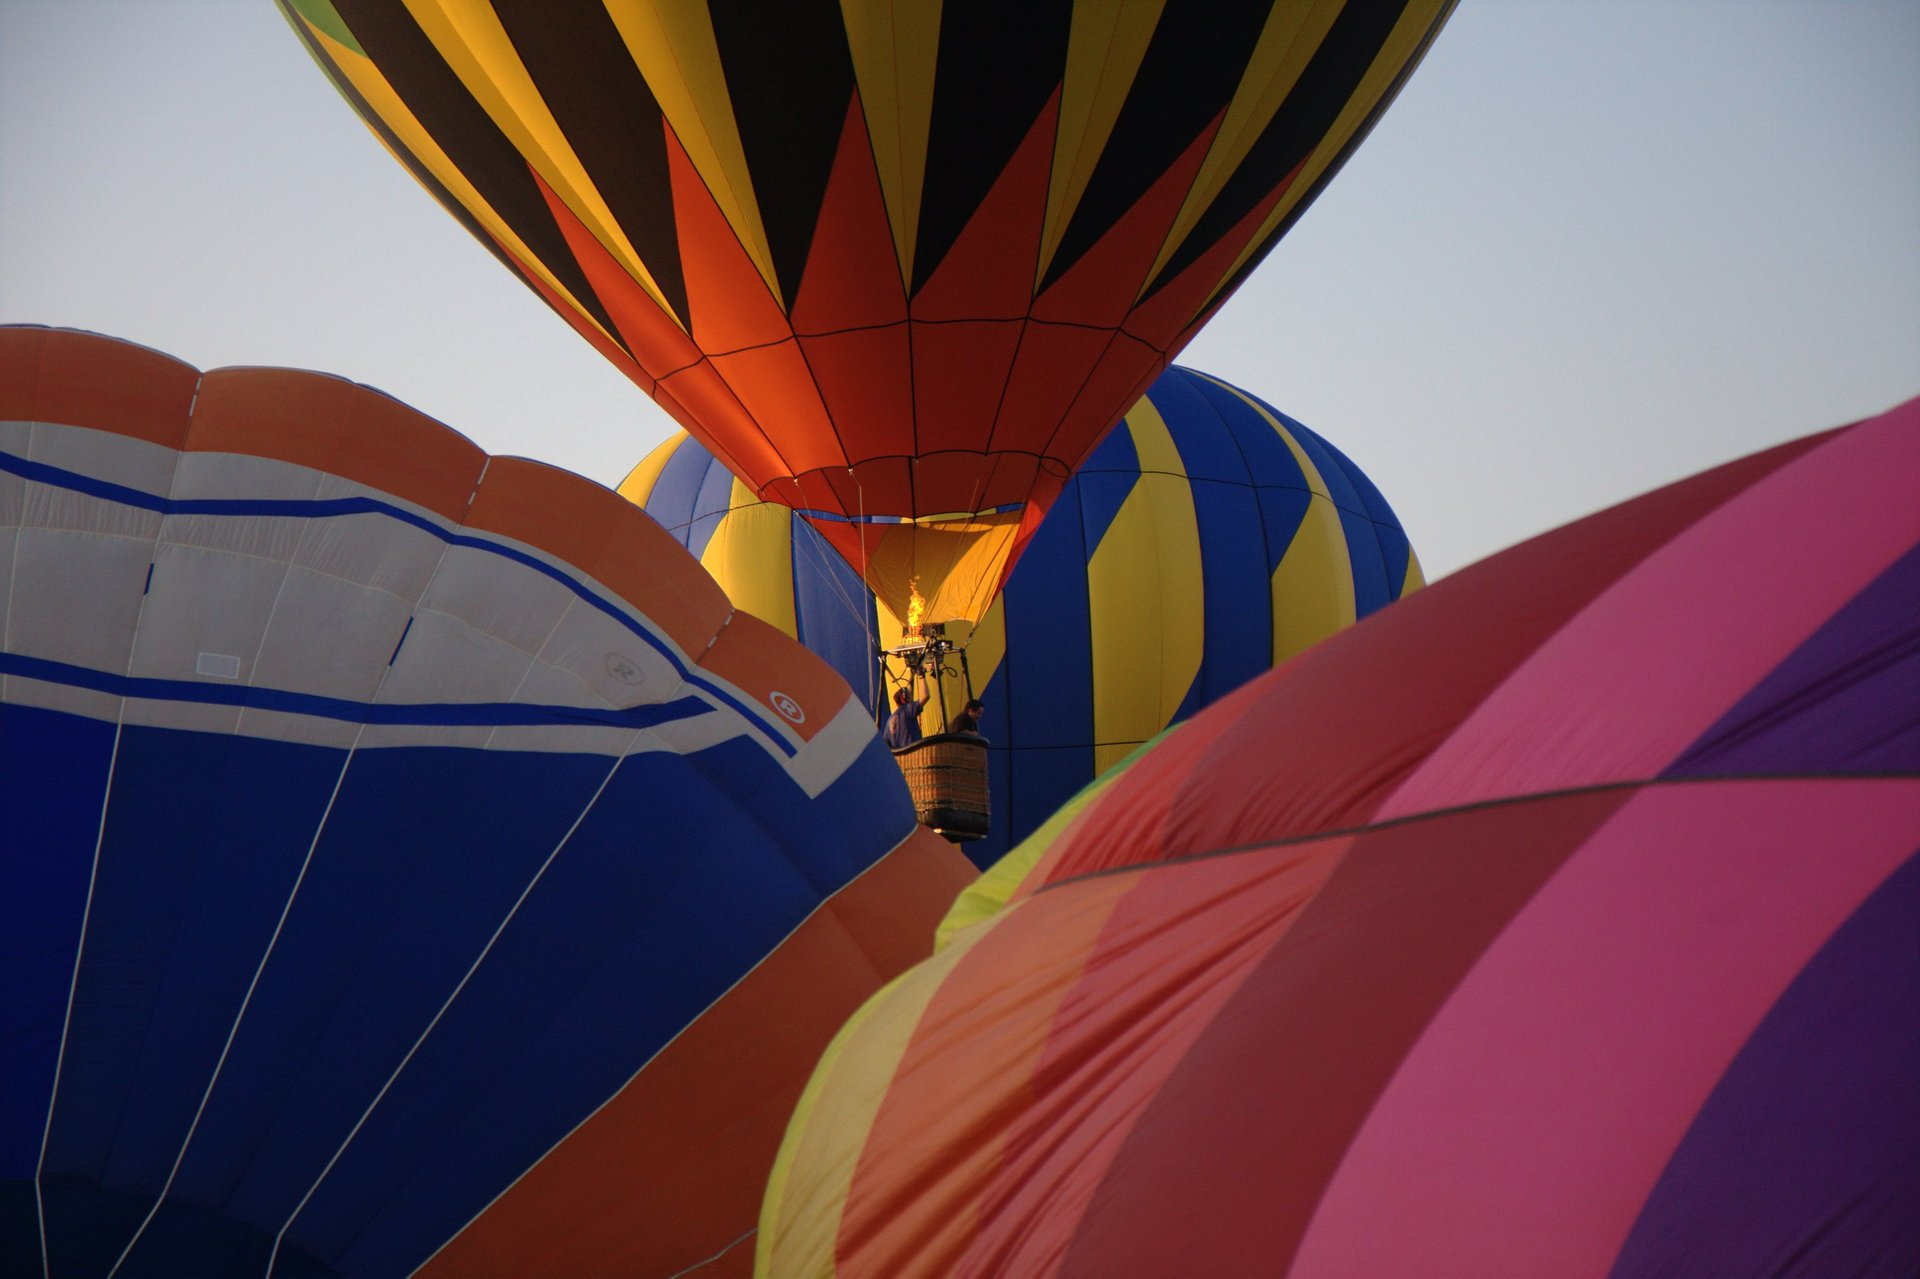 Plano Balloon Festival in Texas 2020 - Best Time